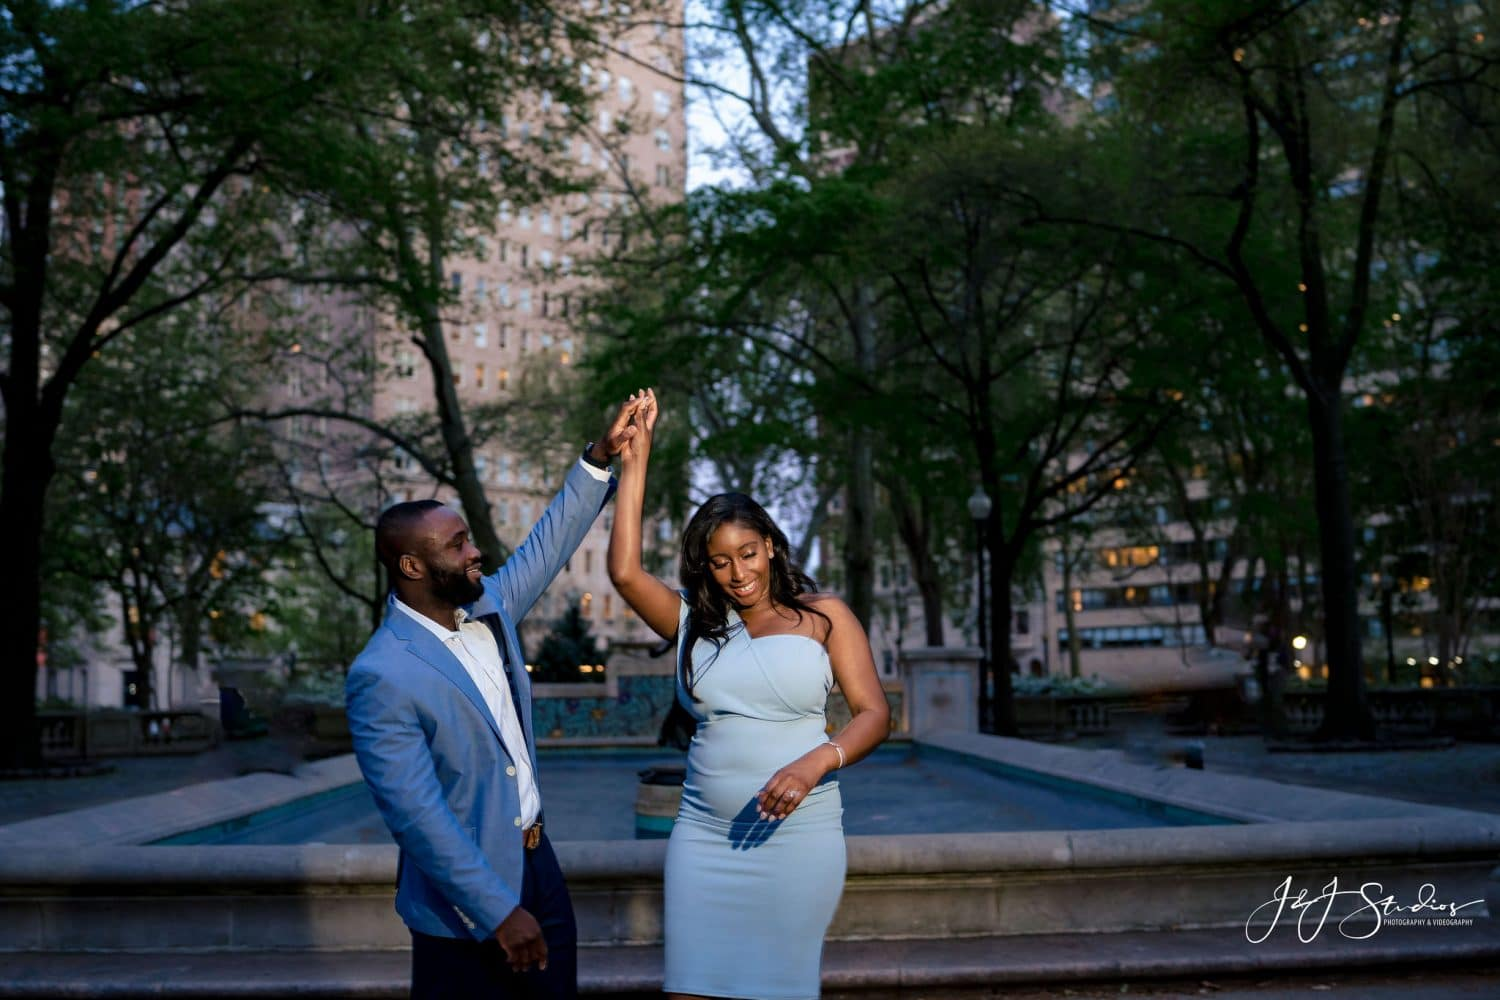 Philly proposal photography and videography by J&J Studios